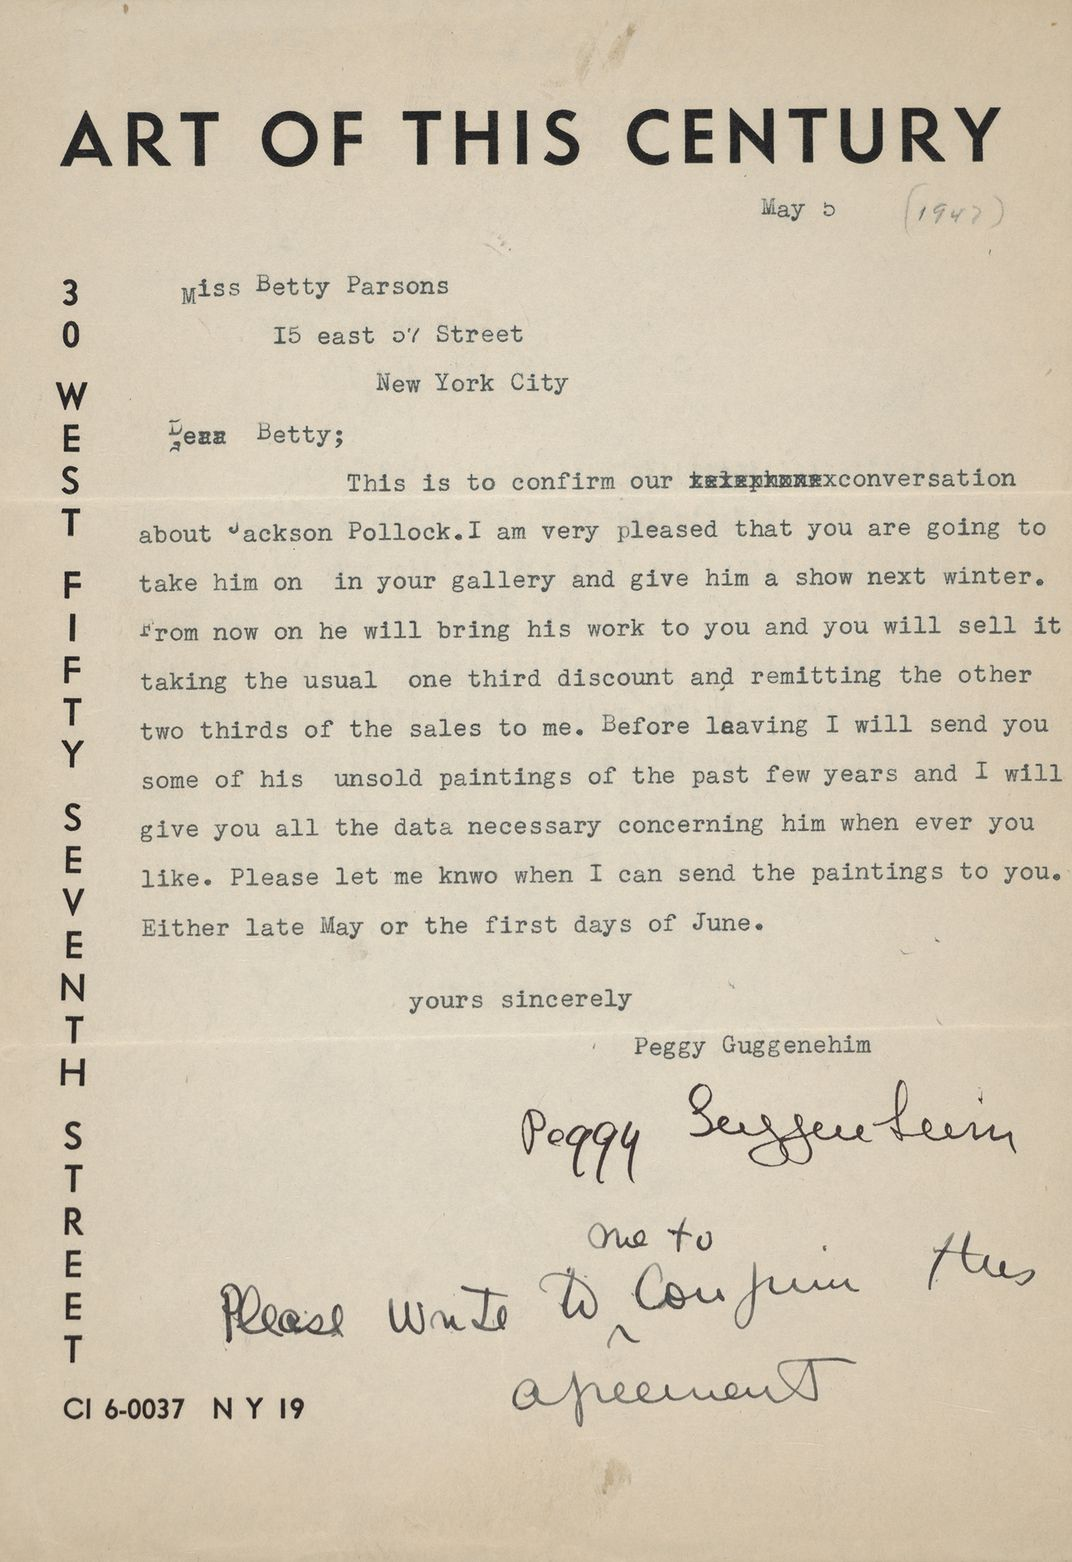 Letter from Peggy Guggenheim to Betty Parsons